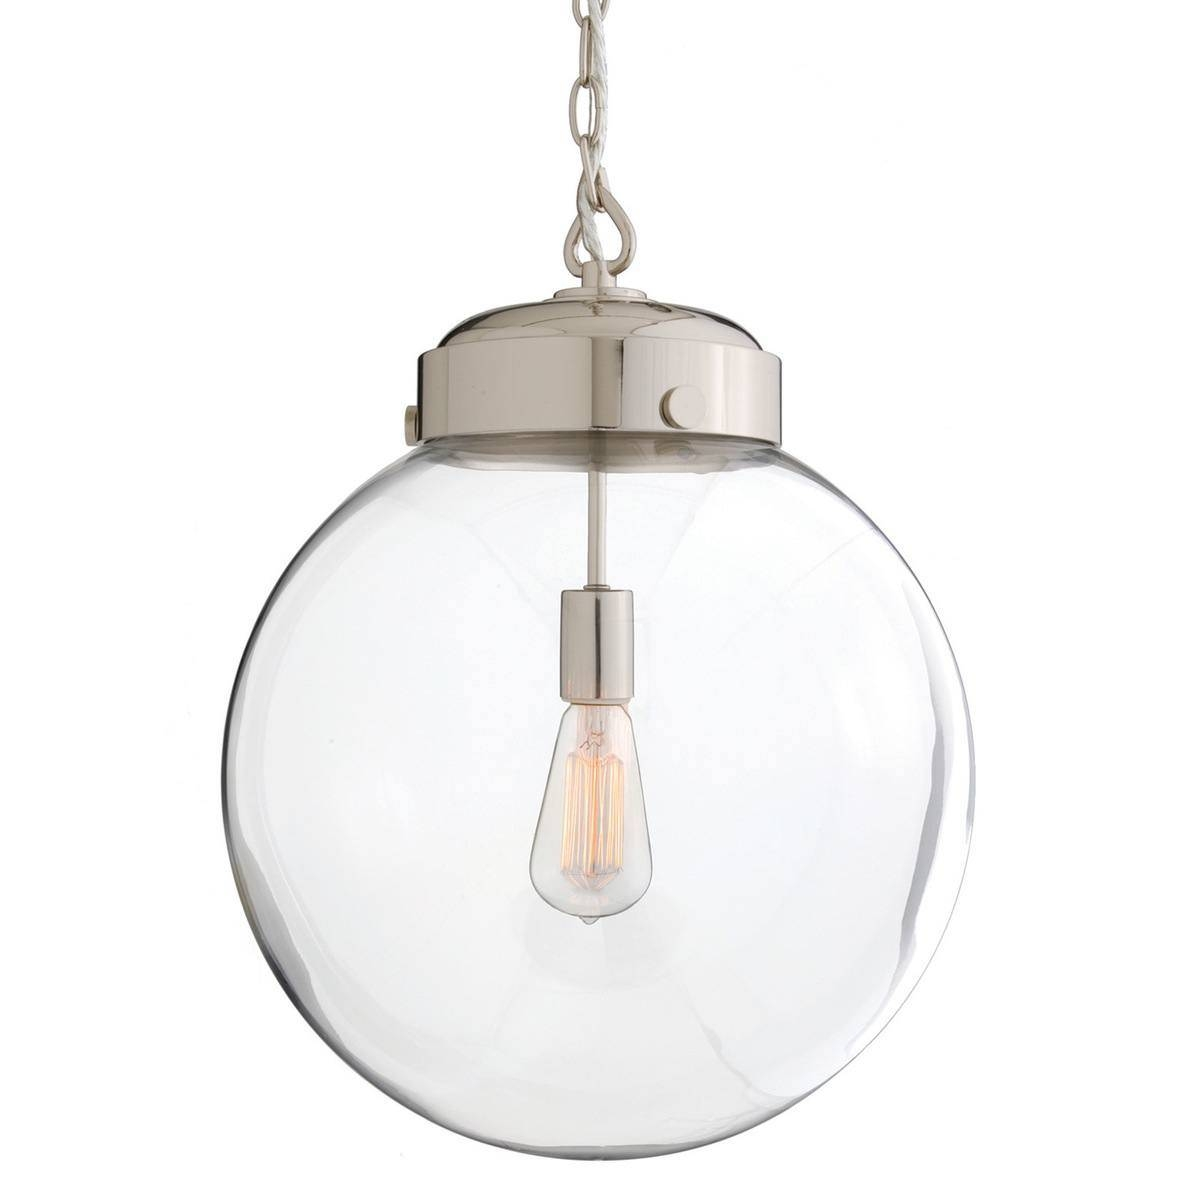 Epic Round Glass Pendant Light With Additional Industrial Ceiling with regard to Round Glass Pendant Lights (Image 5 of 15)